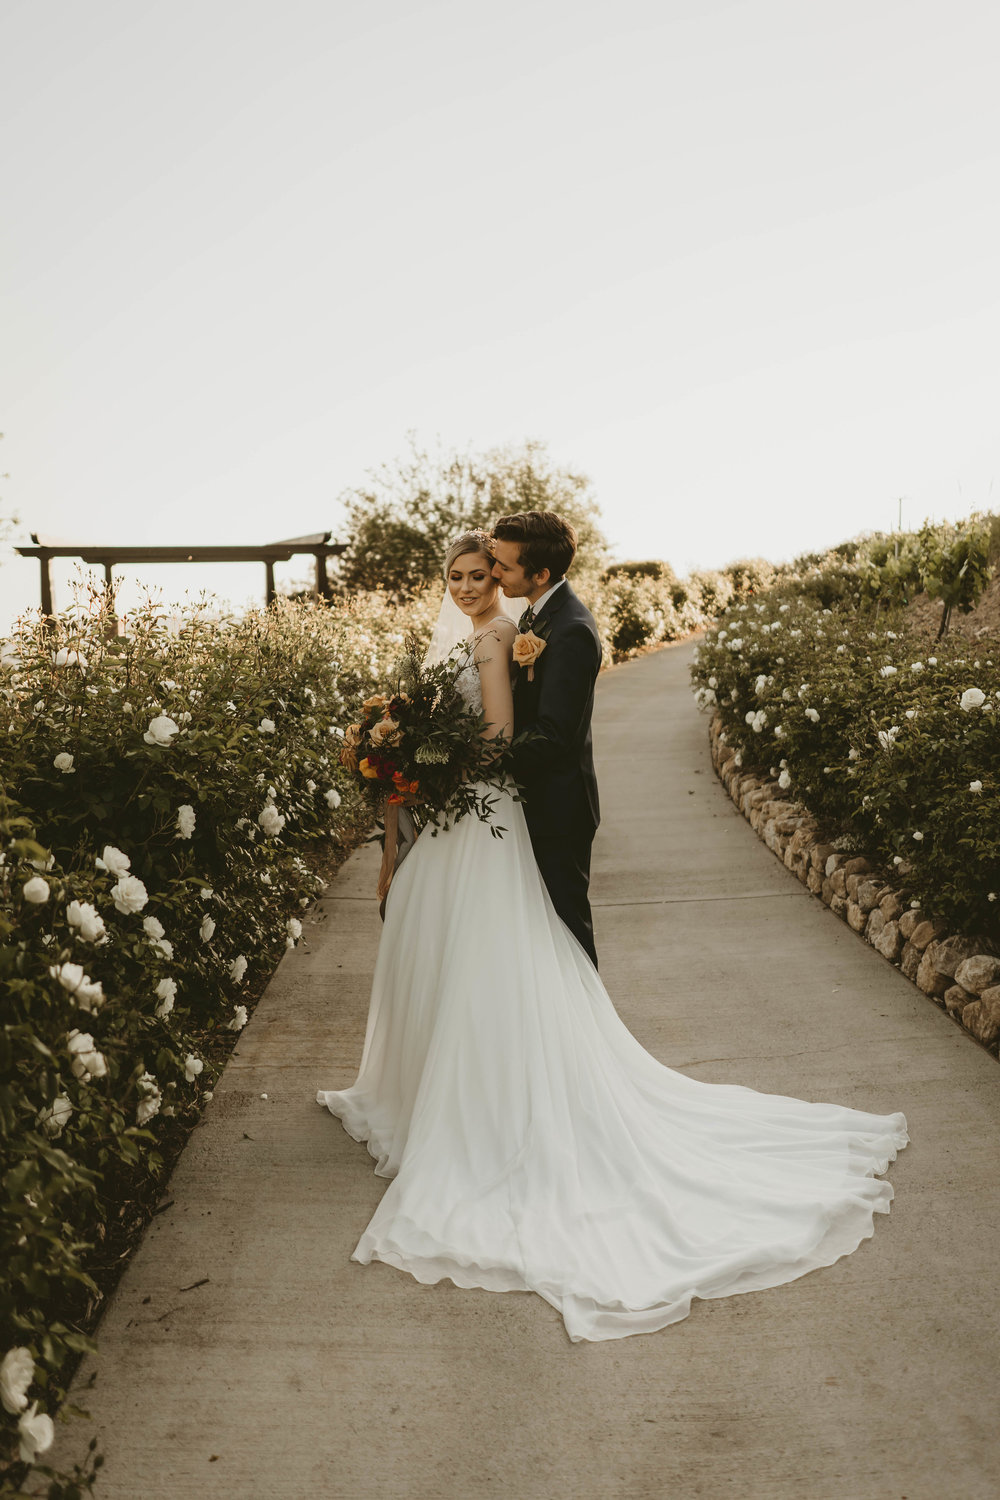 Aili + Austin - Serendipity Garden Weddings